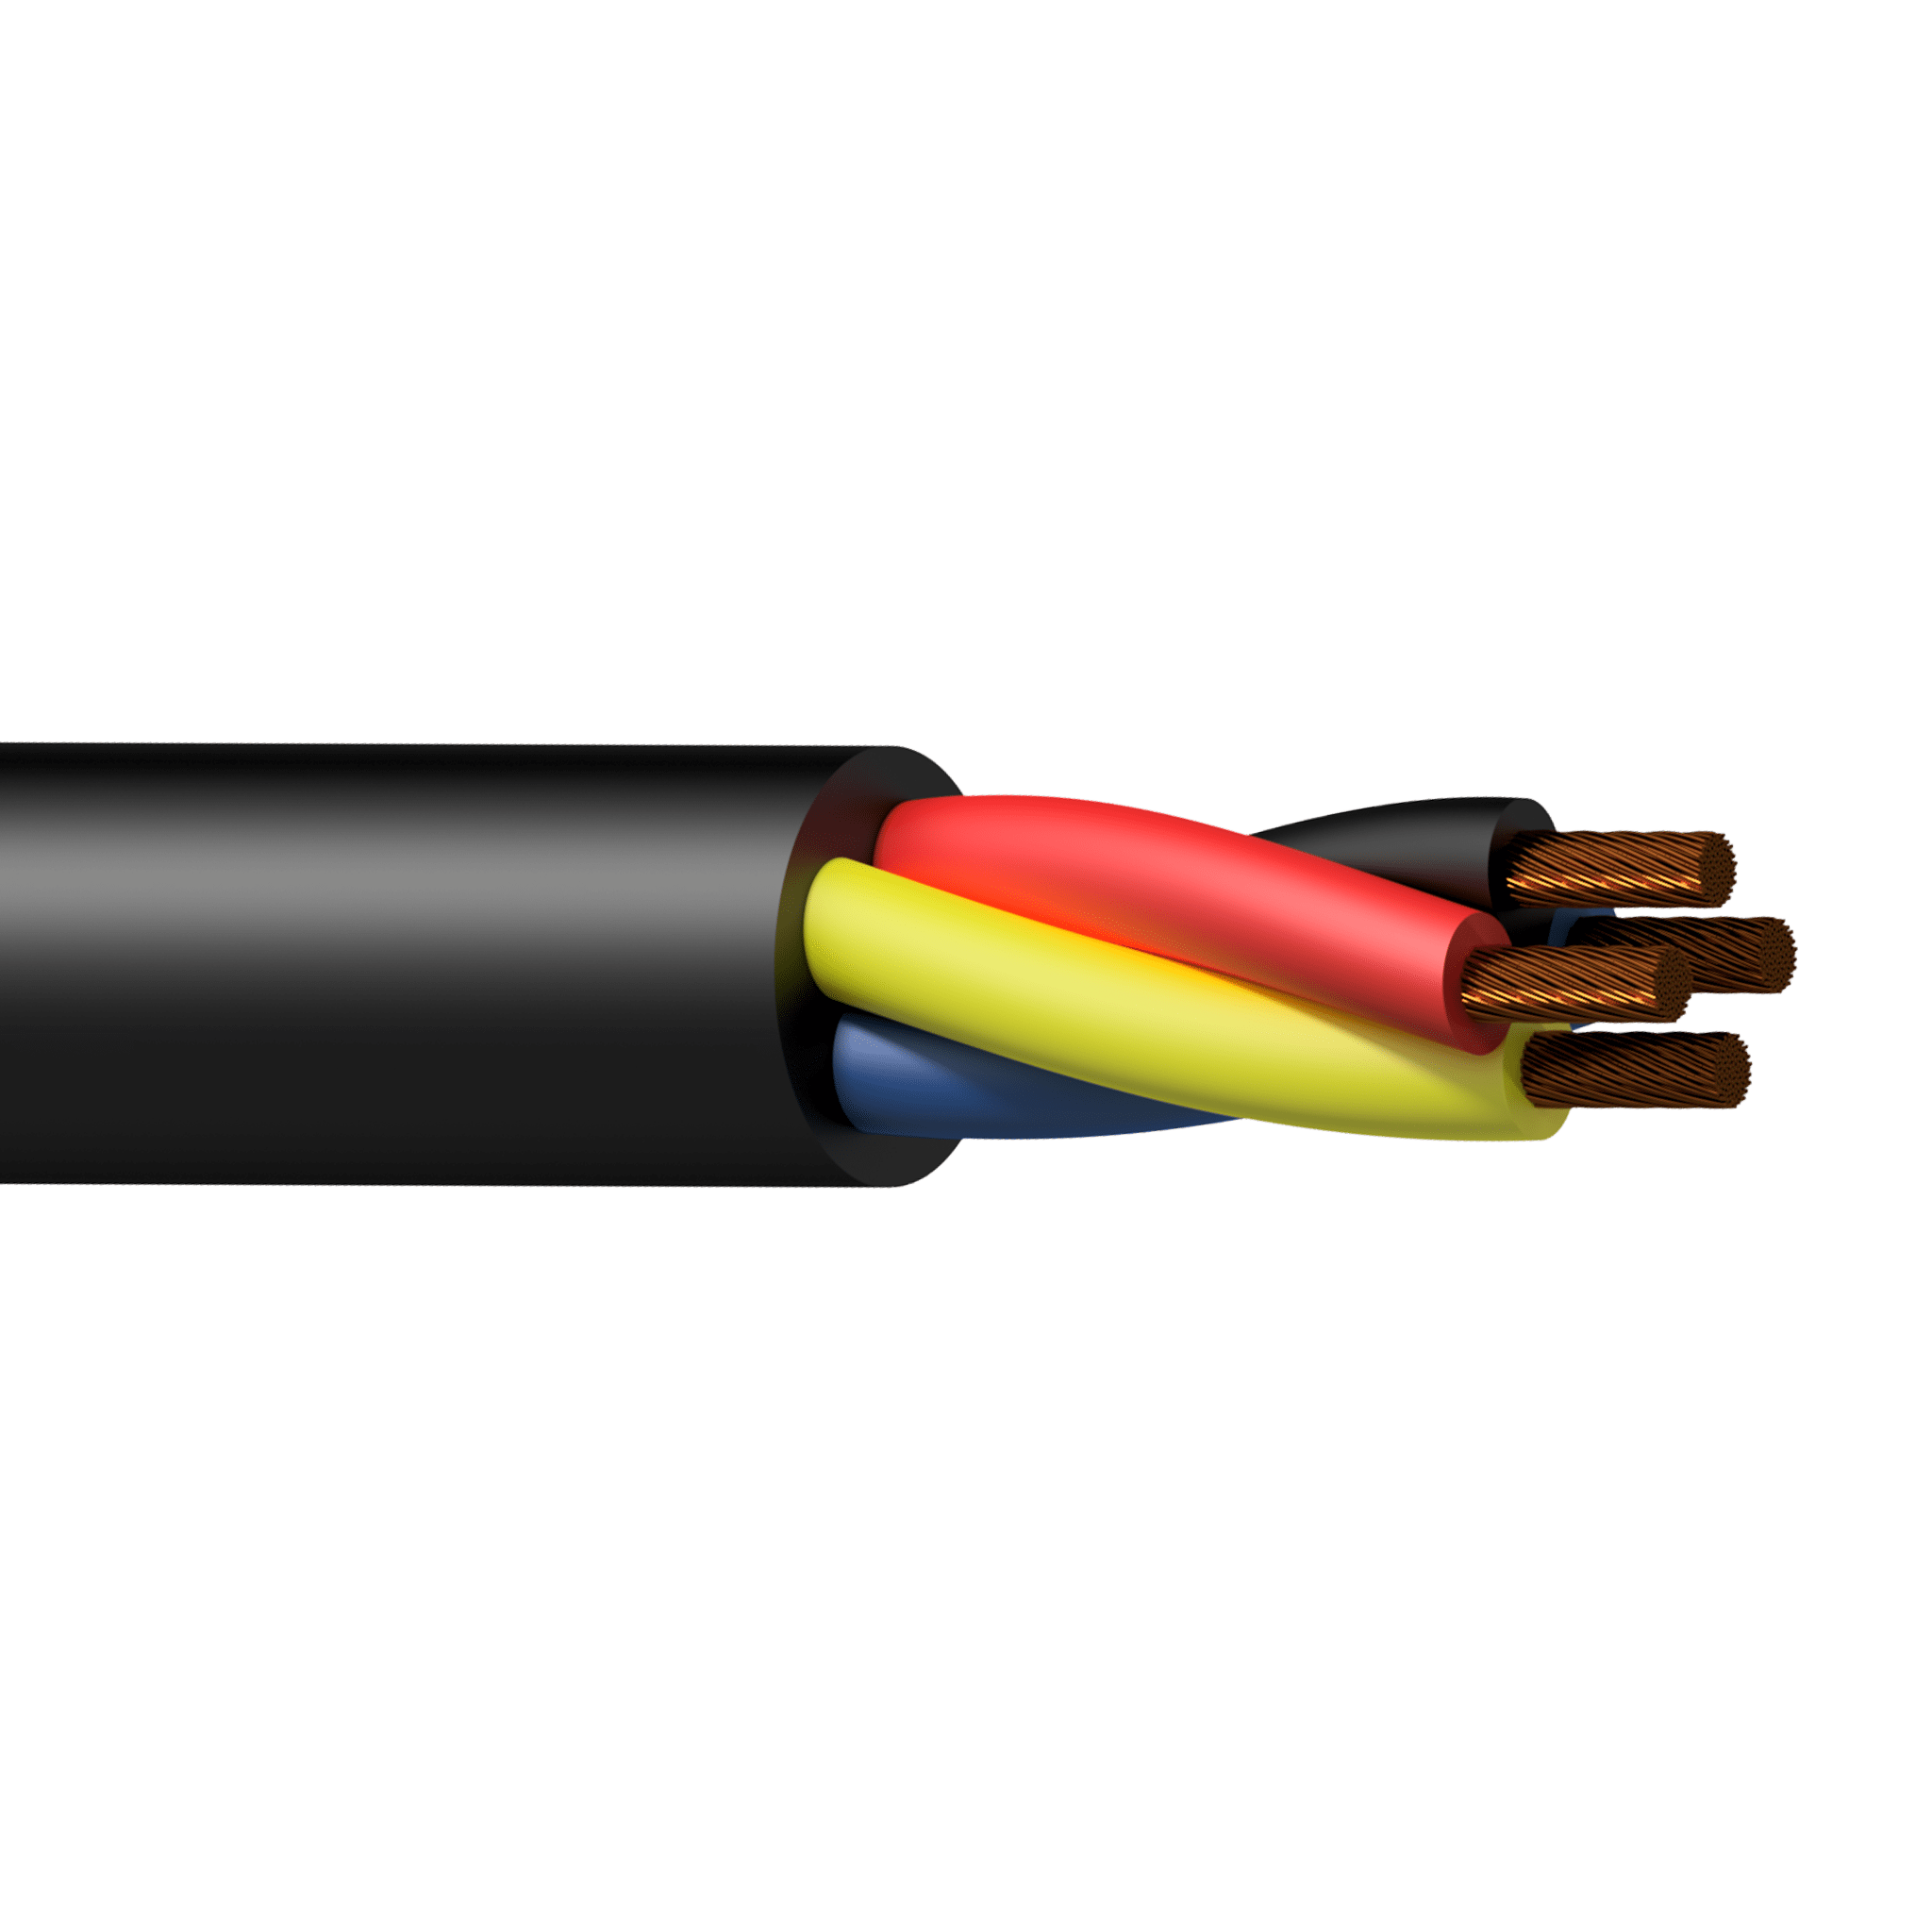 PLS440 - Loudspeaker cable - 4 x 4.0 mm² - 11 AWG - HighFlex™